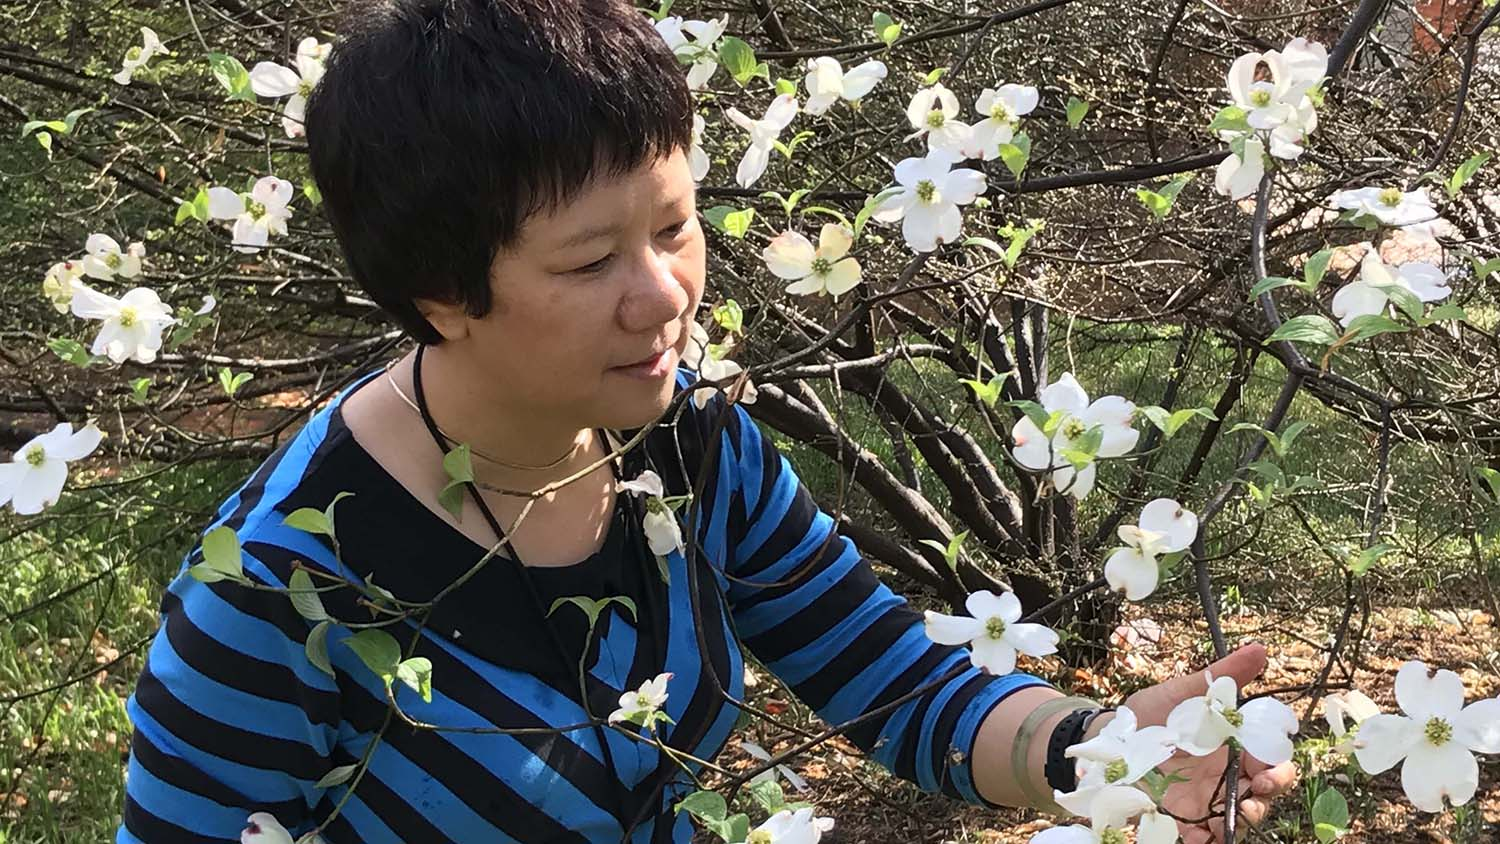 Jenny Xiang surrounded by a flowering dogwood in full bloom.